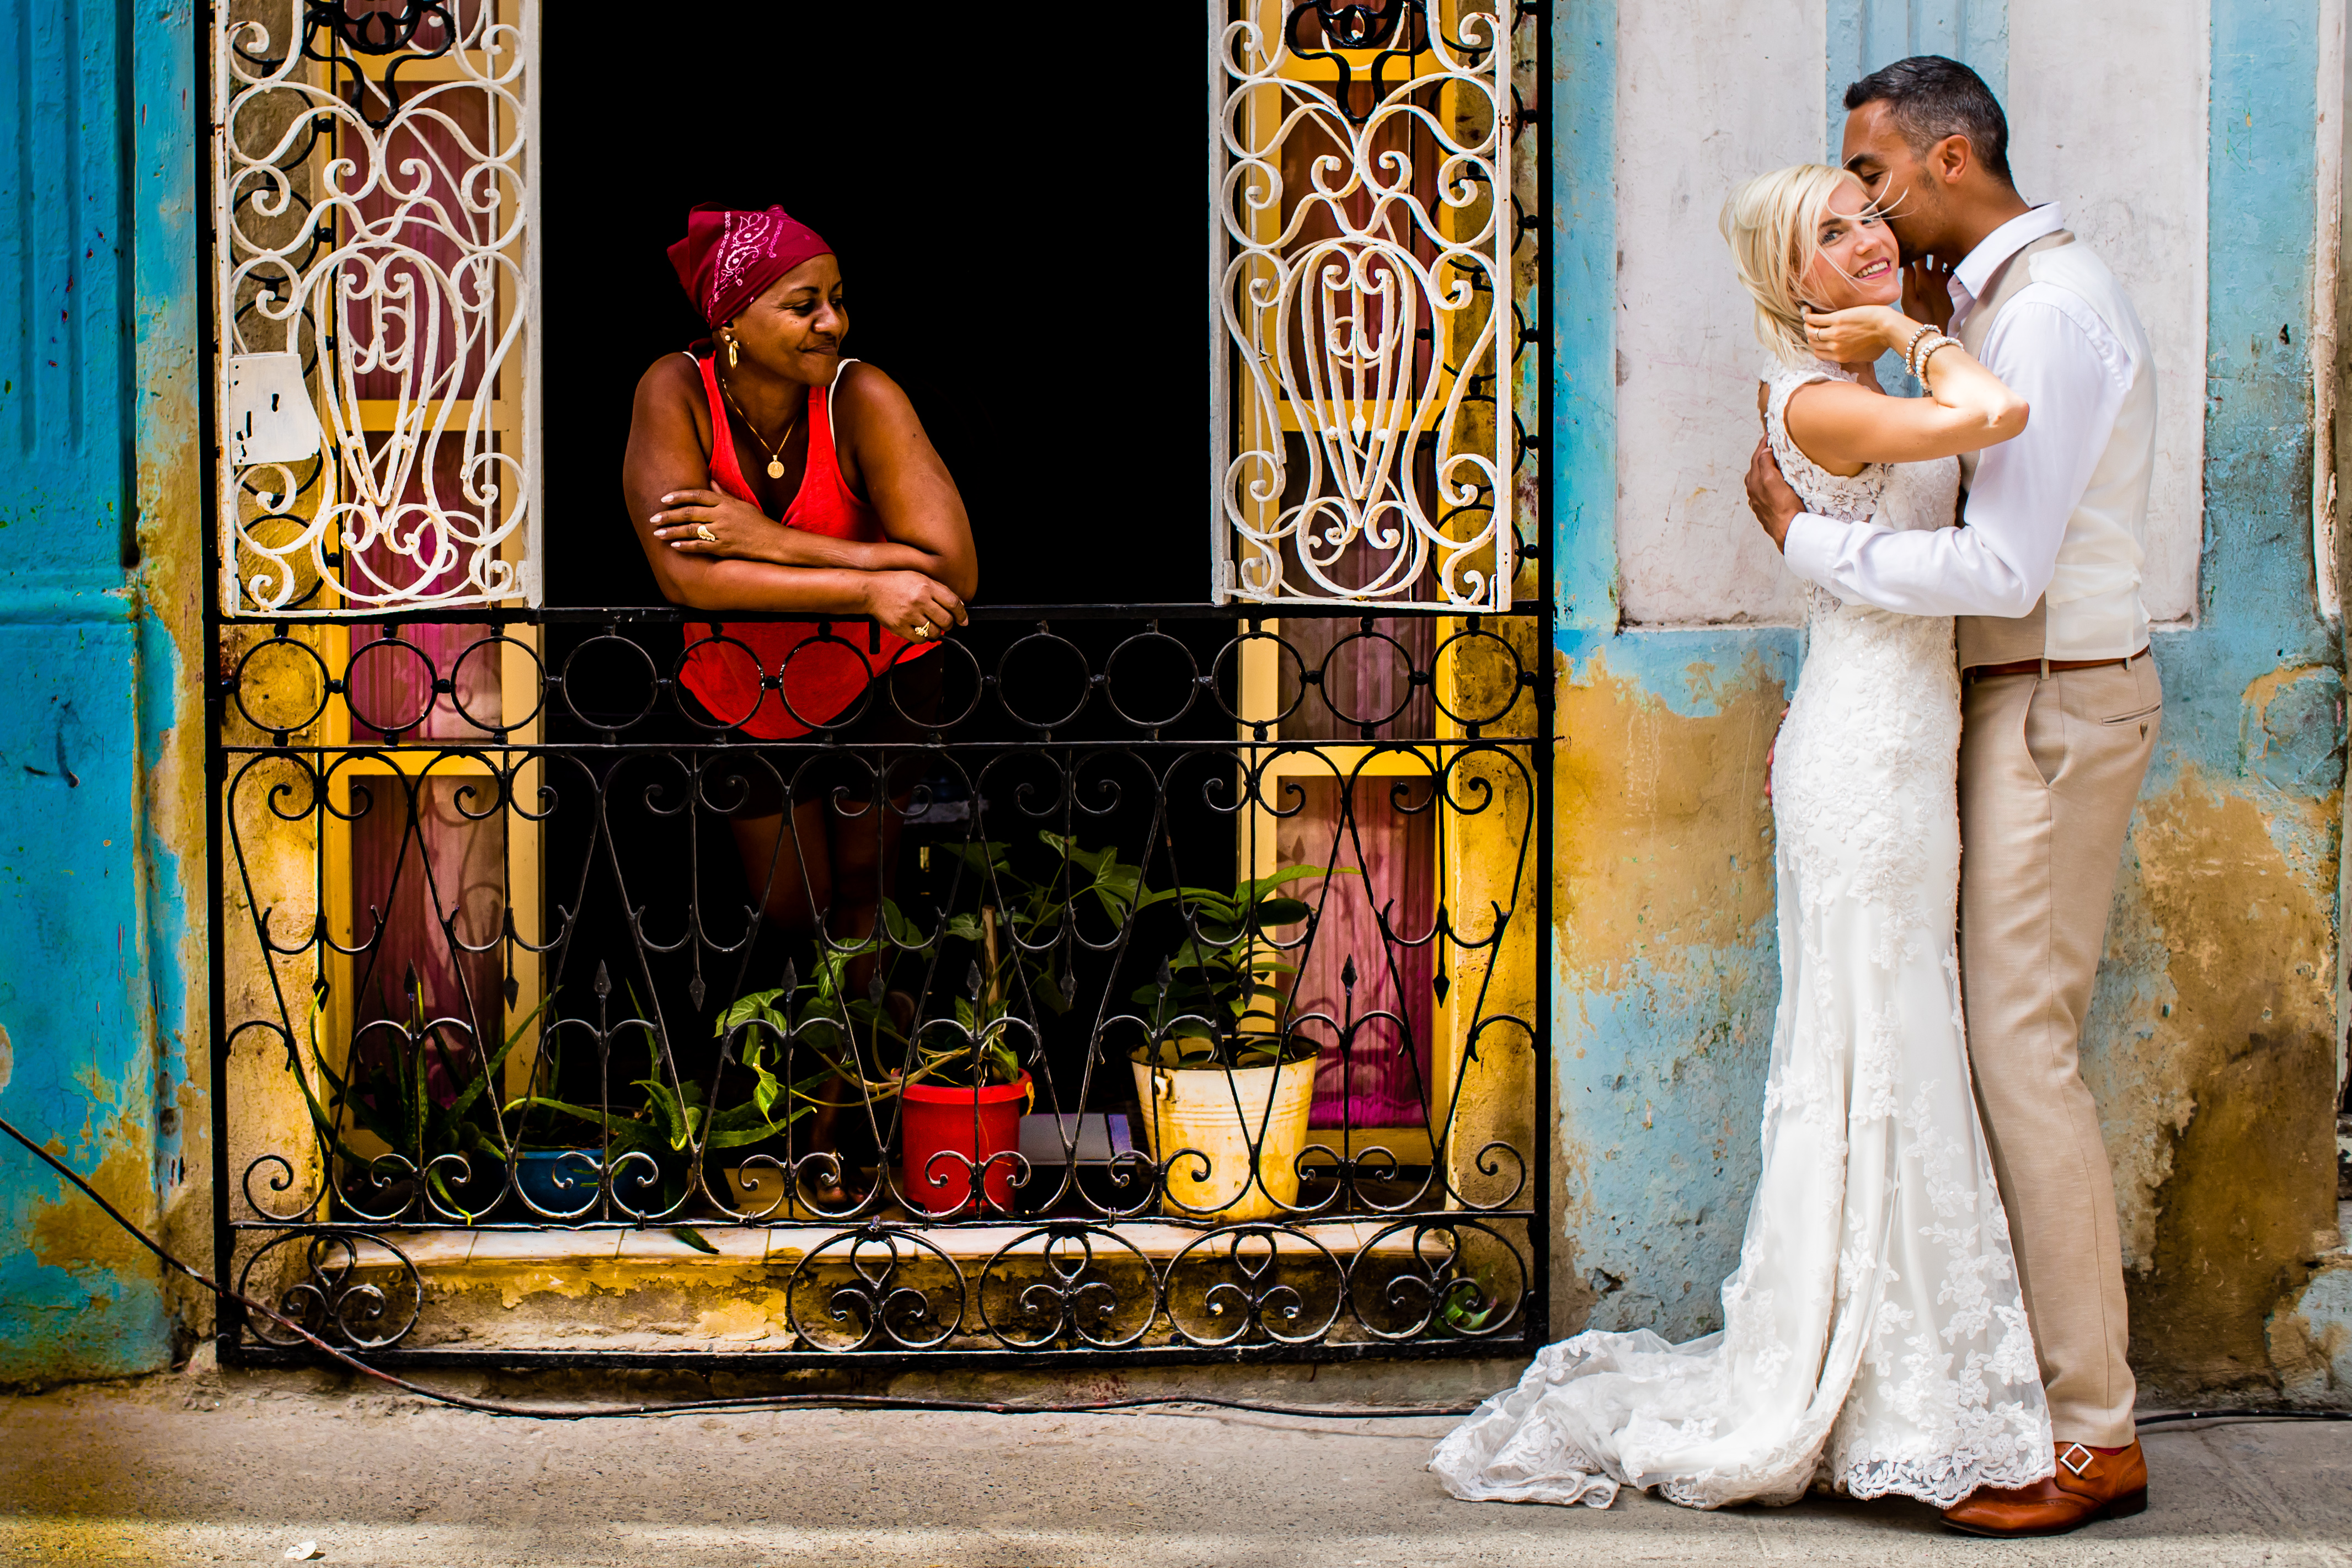 Local women watches during elopement shot in Havana, Cuba - photo by Eppel Photography